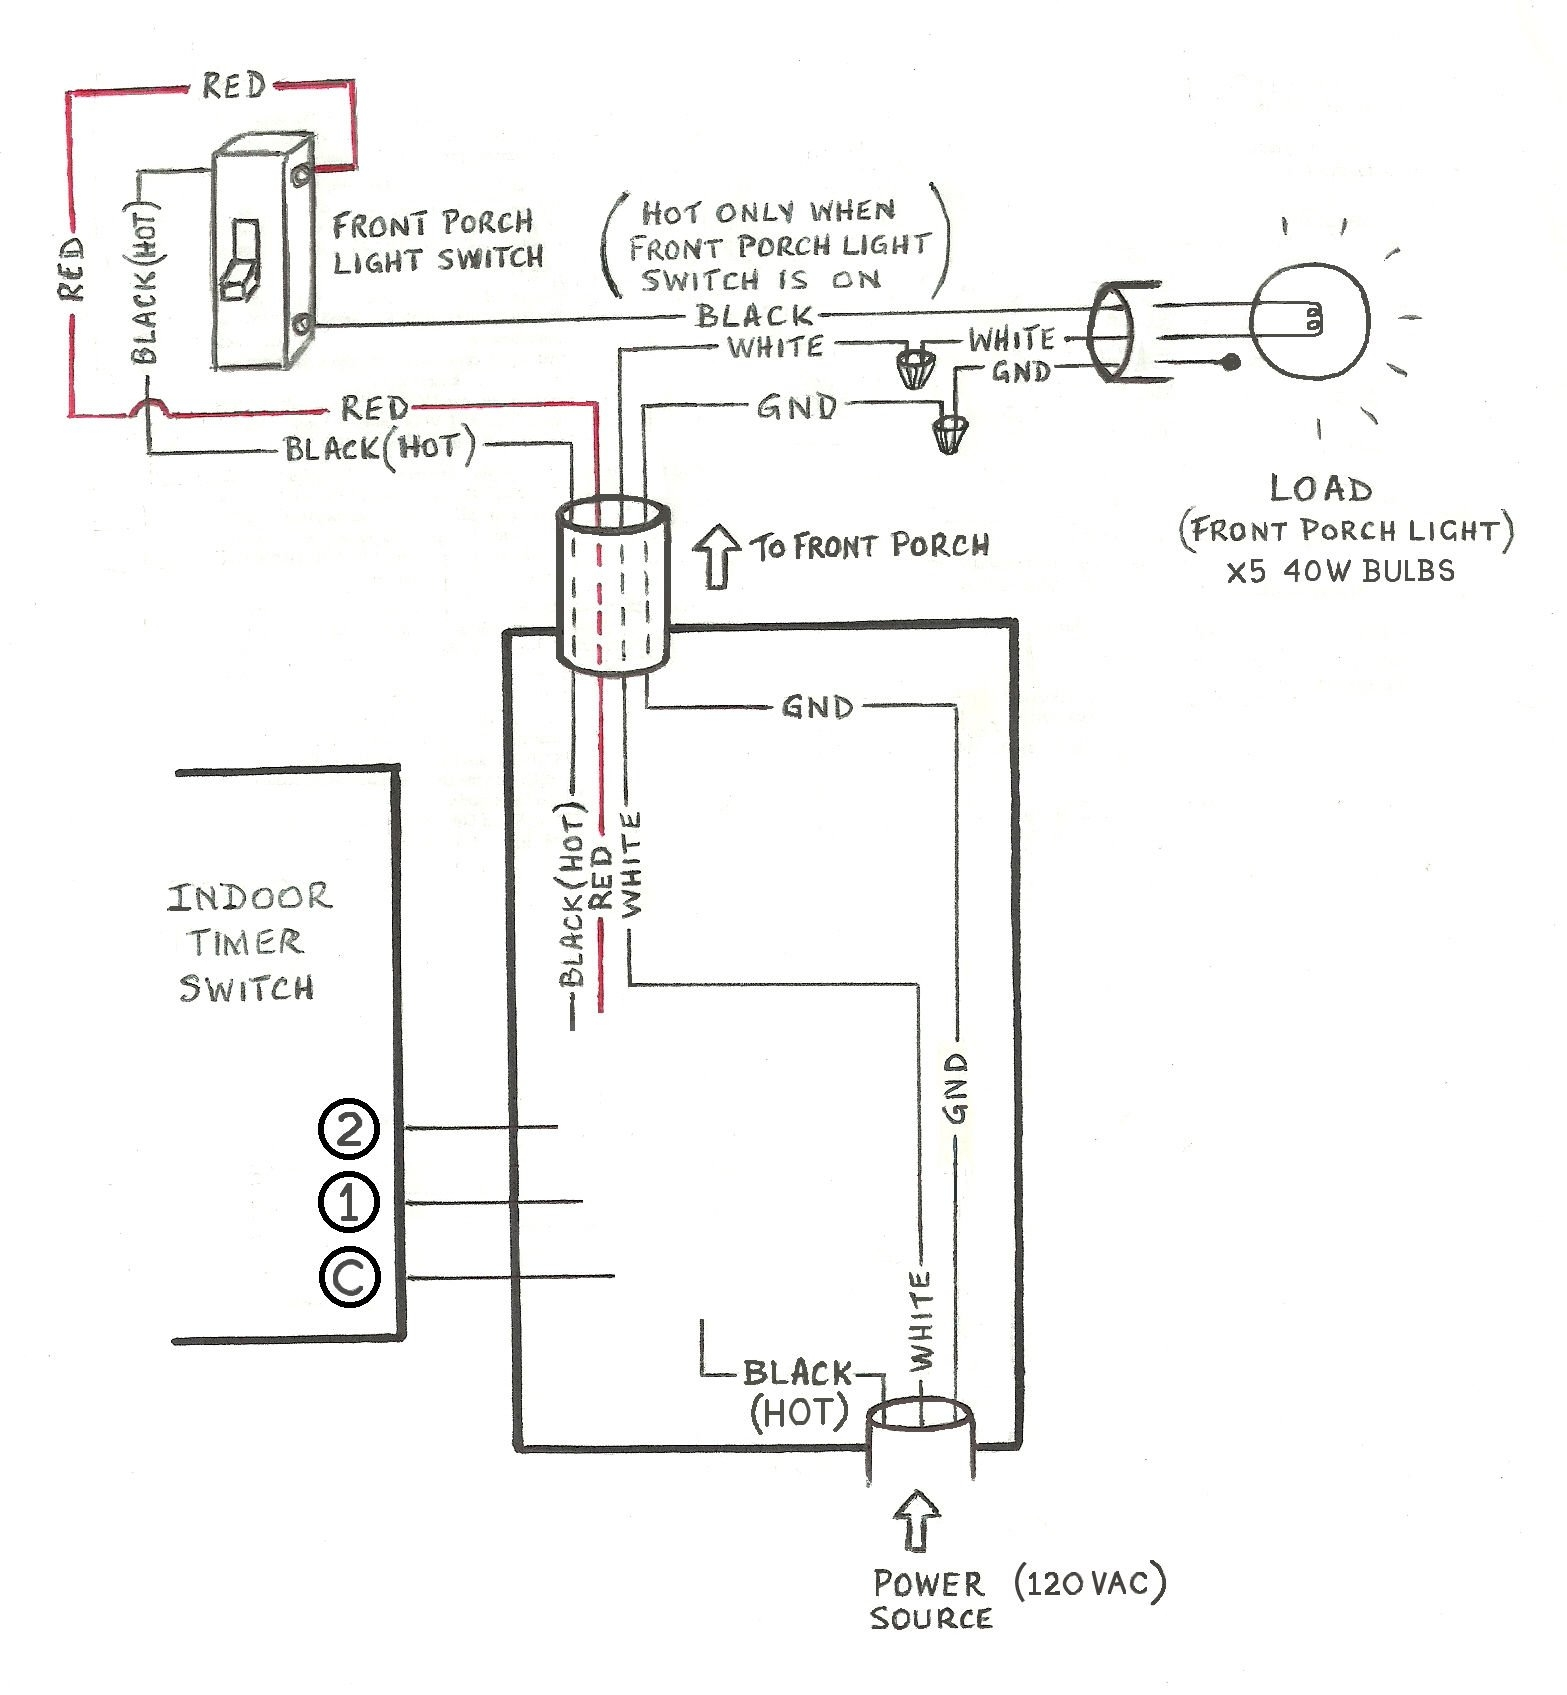 DIAGRAM] Double Pole Switch Wiring Diagram Free Download ... on 3-way switch circuit variations, 3-way switch safety, 3-way switch operation, 3-way switch timer, 3-way switch hook up, 3-way wire colors, 3-way dimmer switch schematic, 3-way wiring fan with light, 3-way switch diagrams, 3-way wiring two switches, 3-way lamp wiring diagram, 3-way switch installation, 3 wire switch schematic, 3-way switch controls, 3-way light schematic, 3-way switch two lights, 3-way wiring diagram multiple lights, 4-way light switch schematic, 3-way switches for dummies,